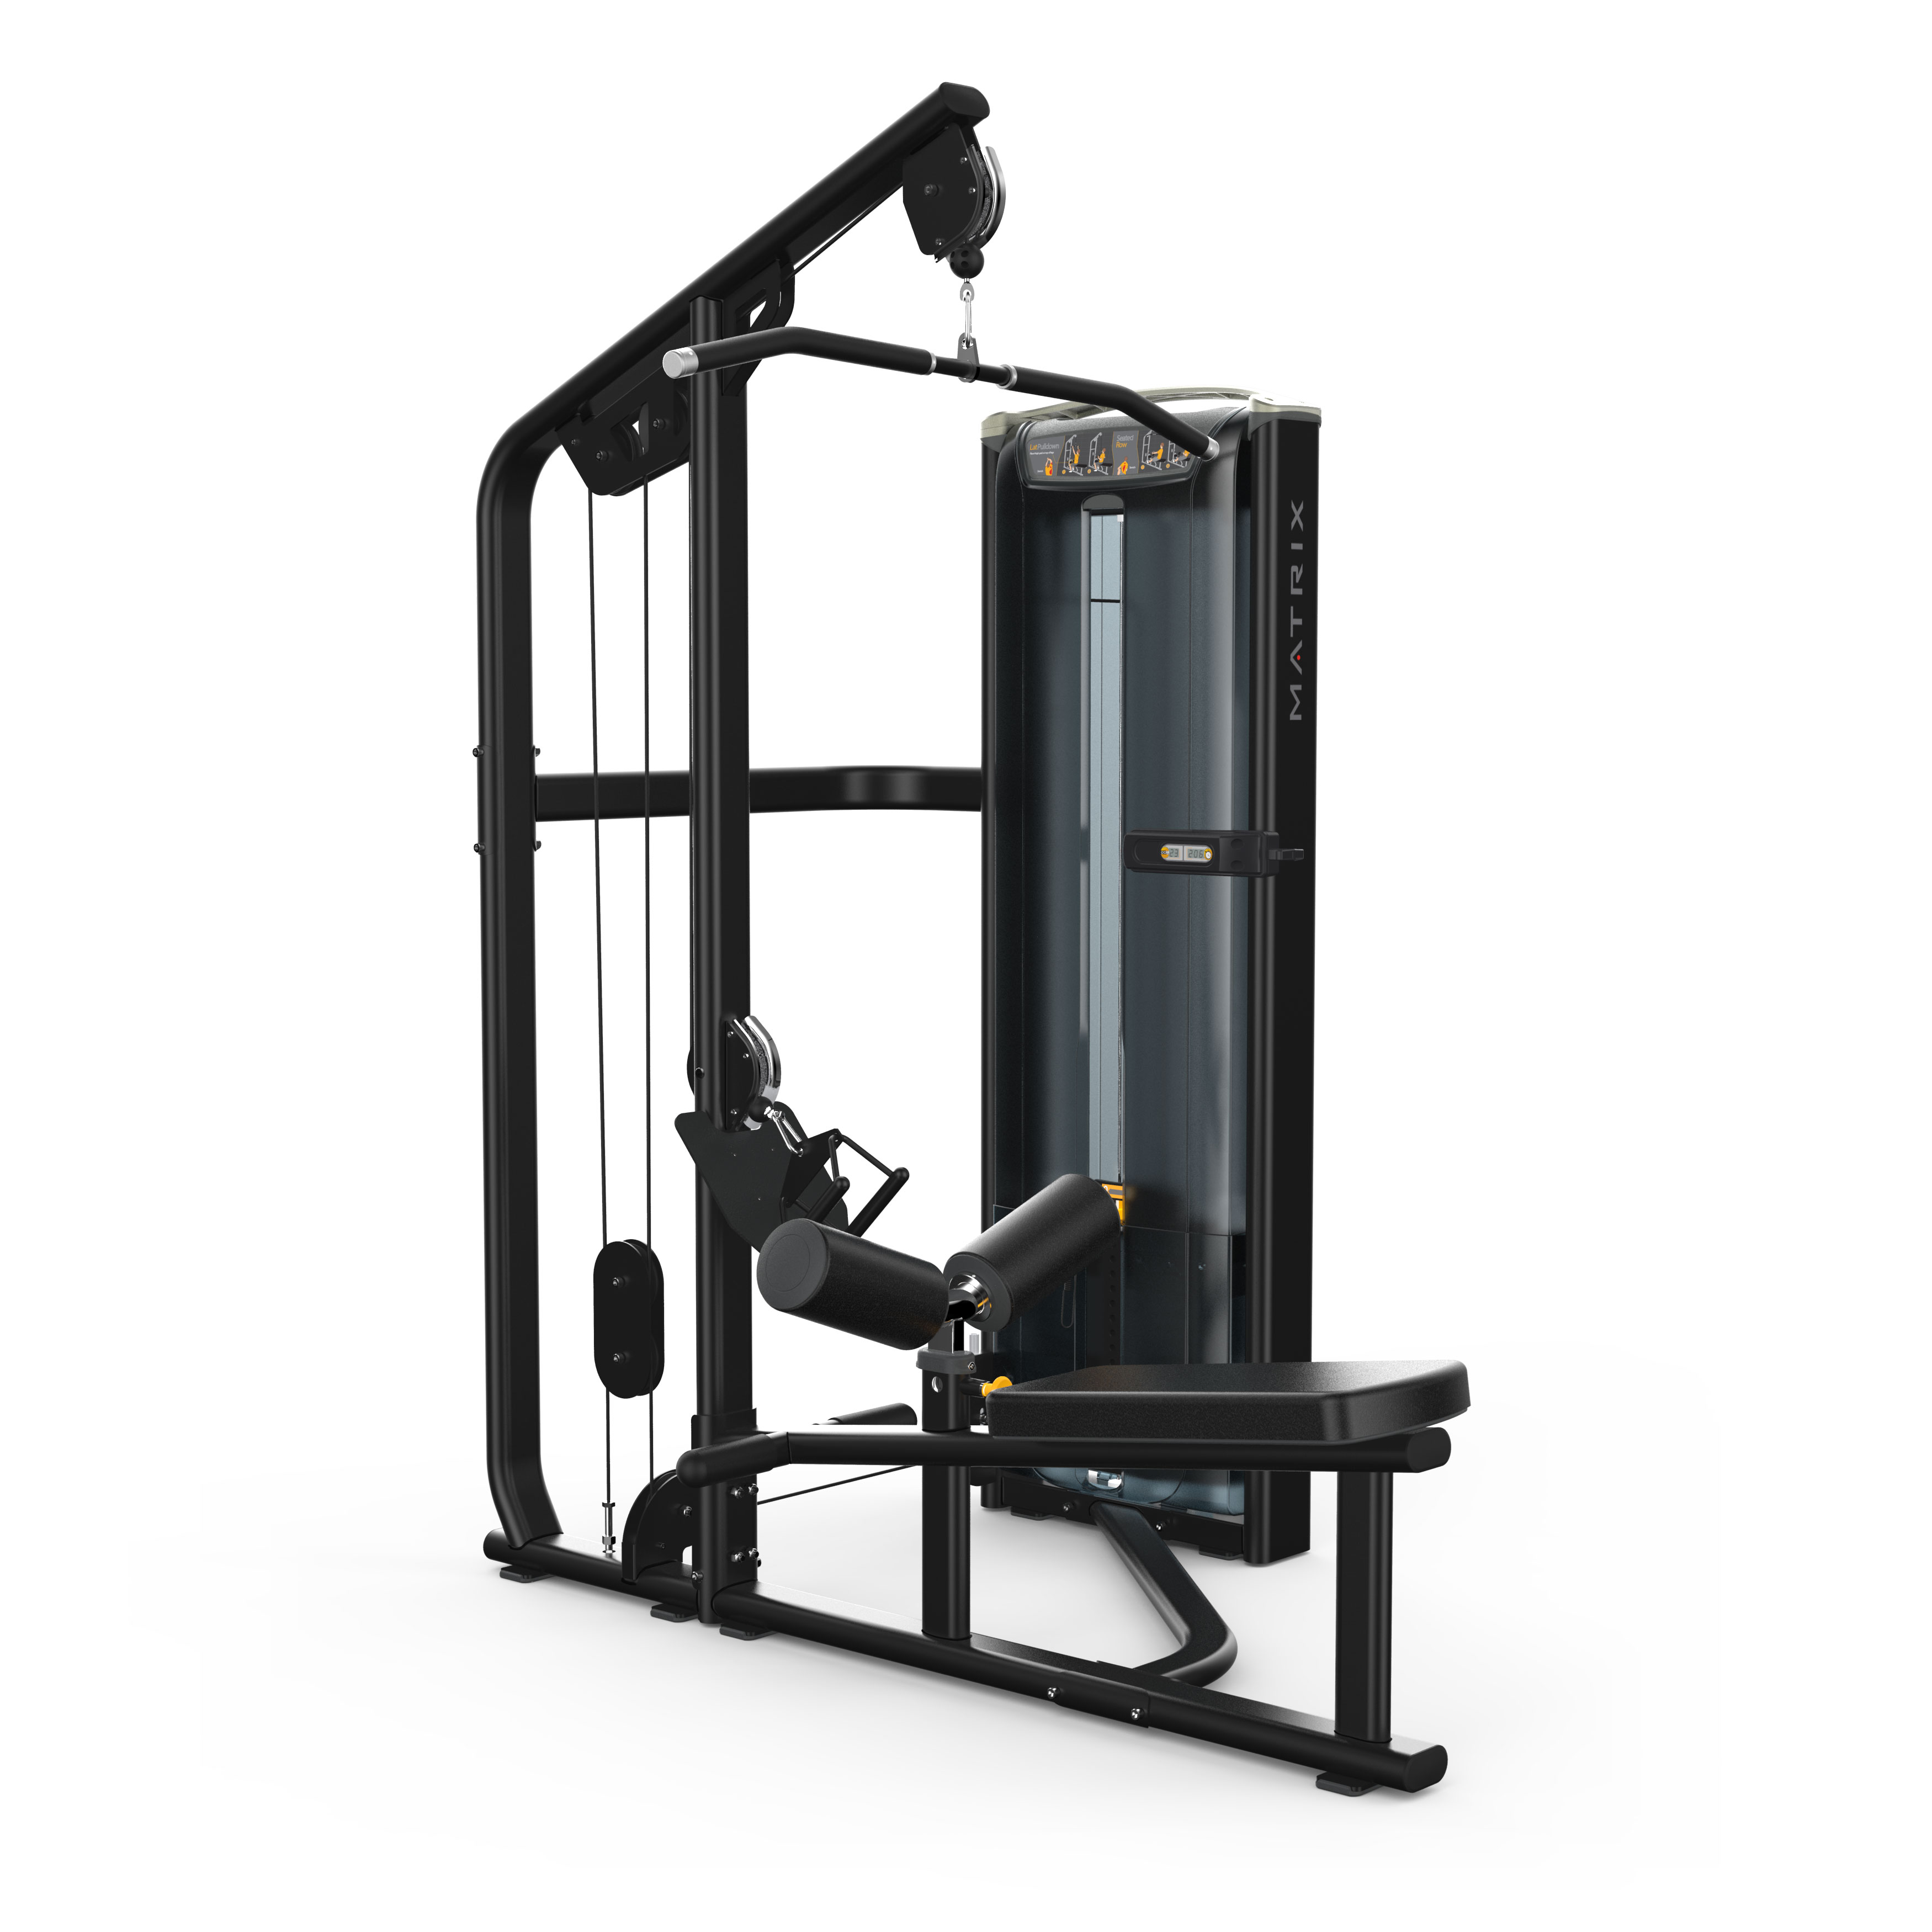 MX17_VERSA VS-S331 combo lat pulldown-seated row_Blk Matte_hero